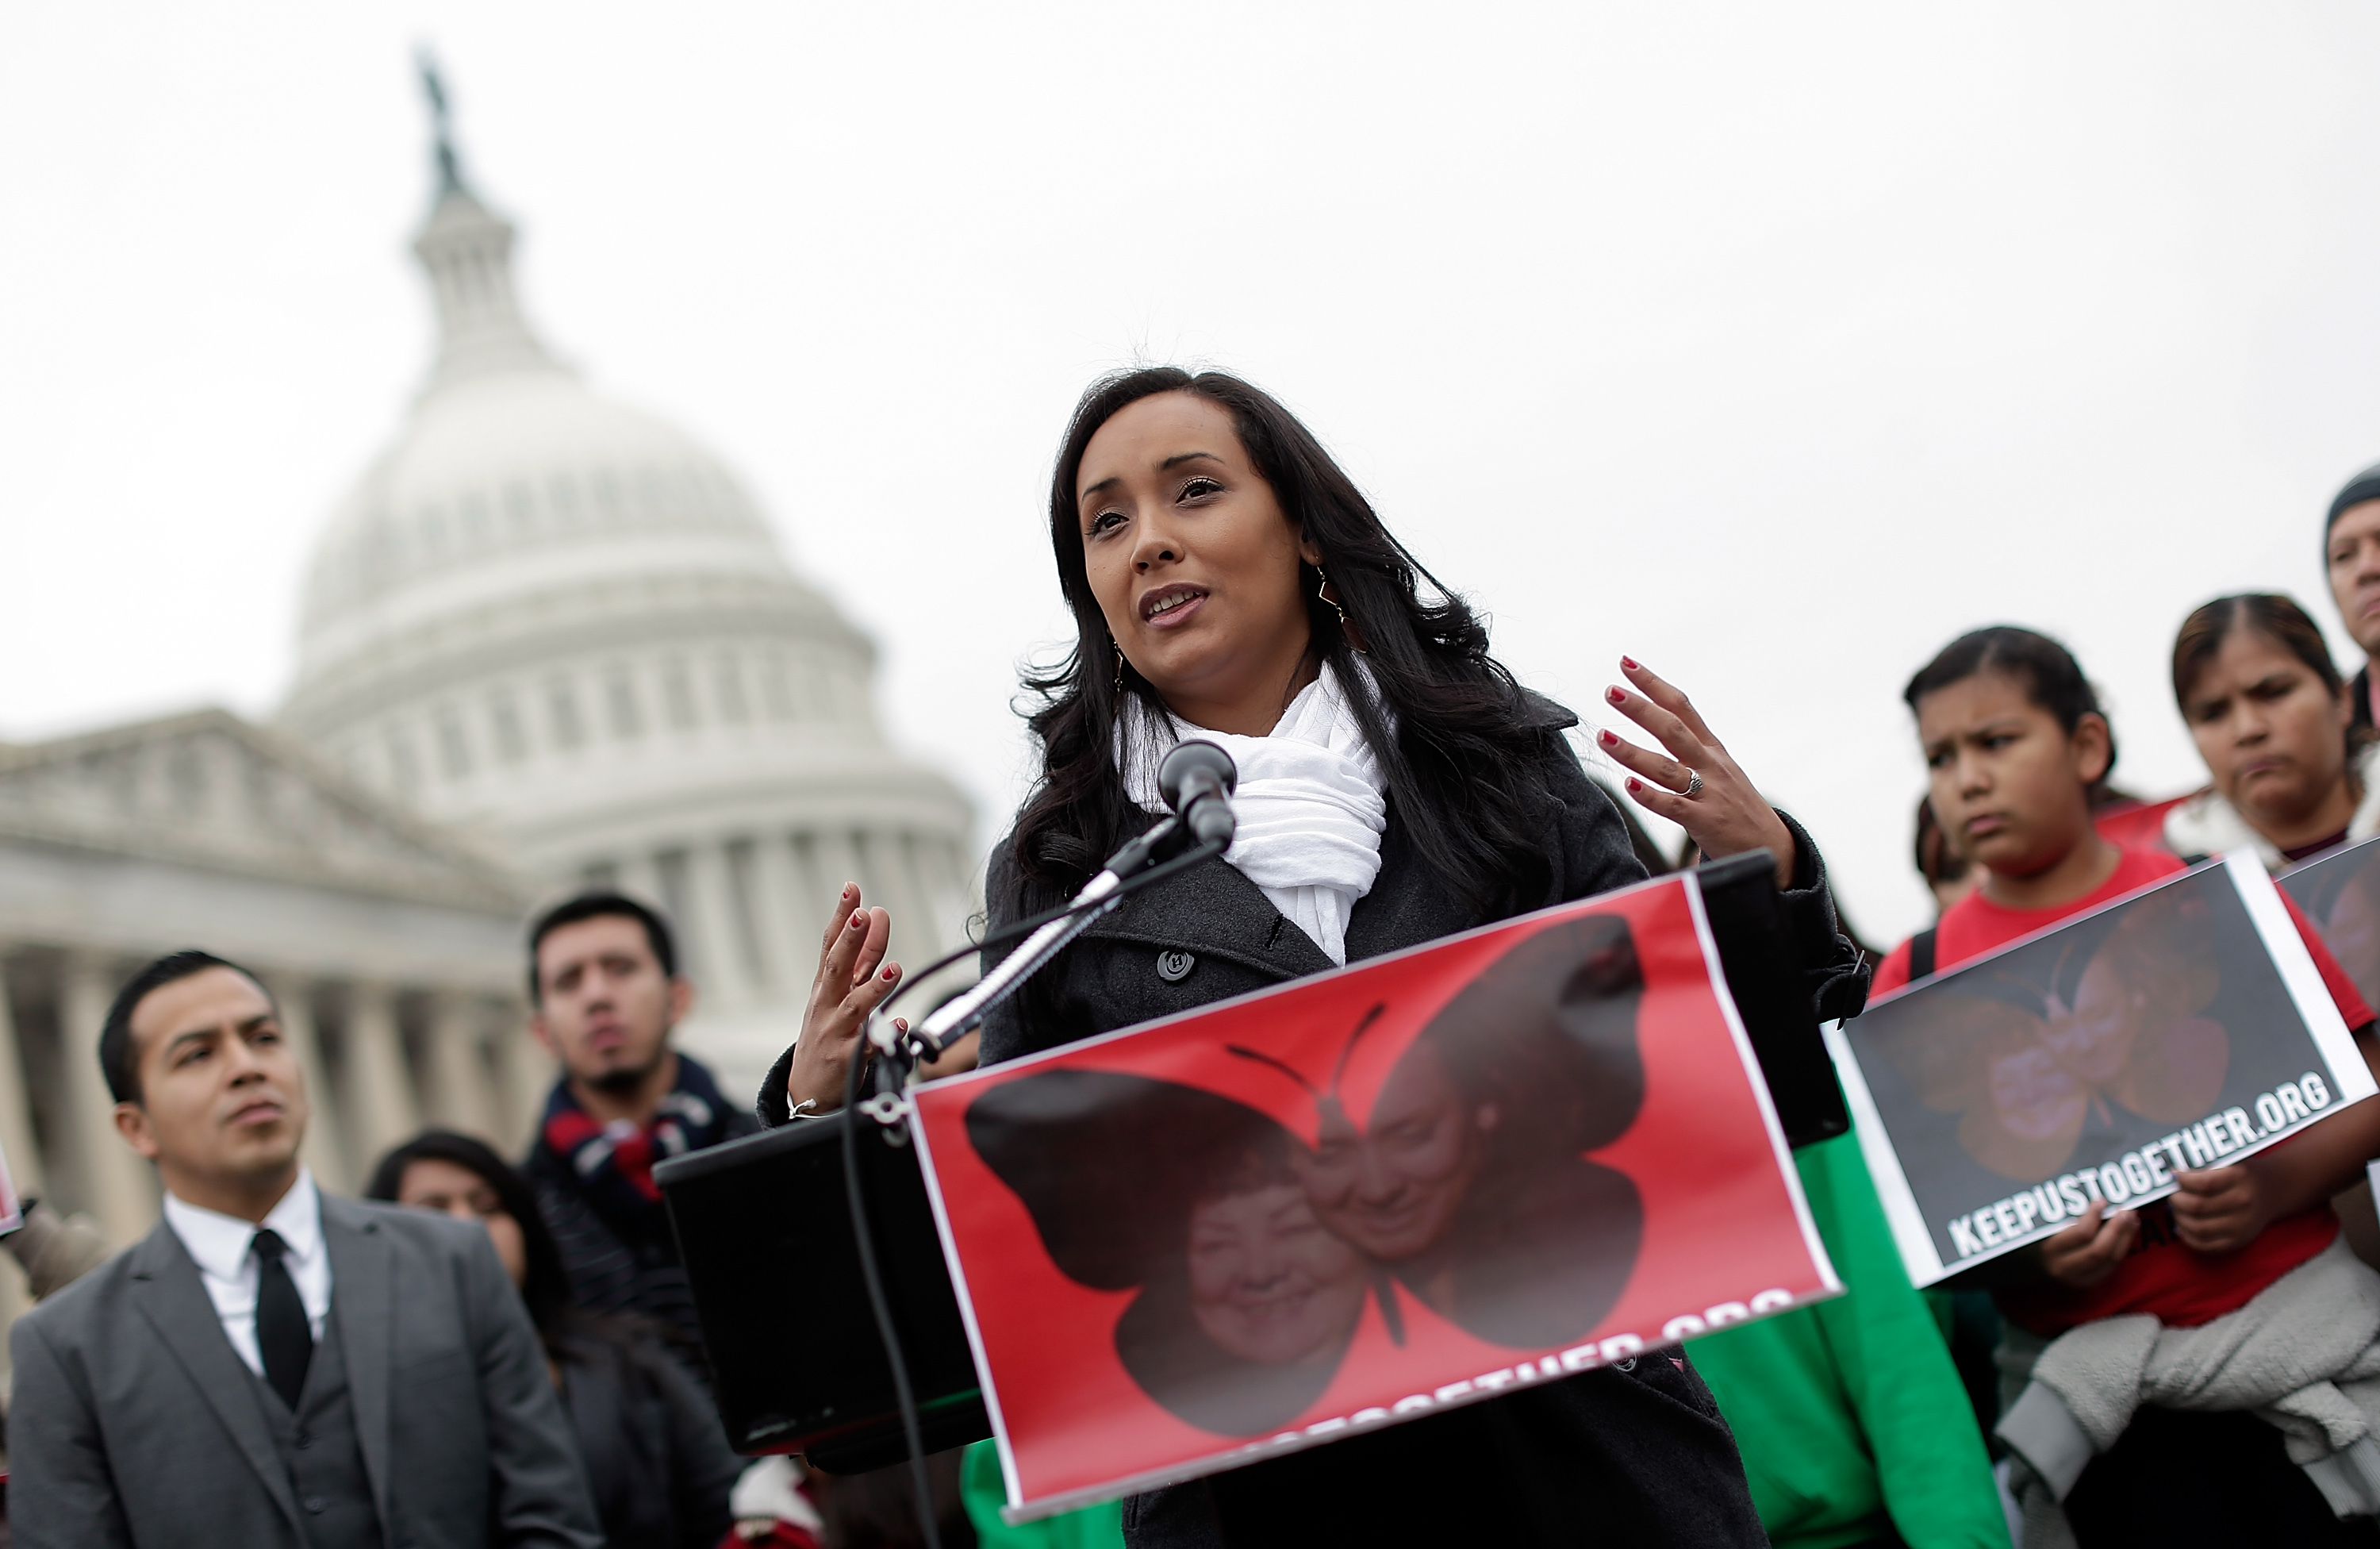 Dream Act Activists Hold News Conference Urging Congress To Take Up Immigration Reform